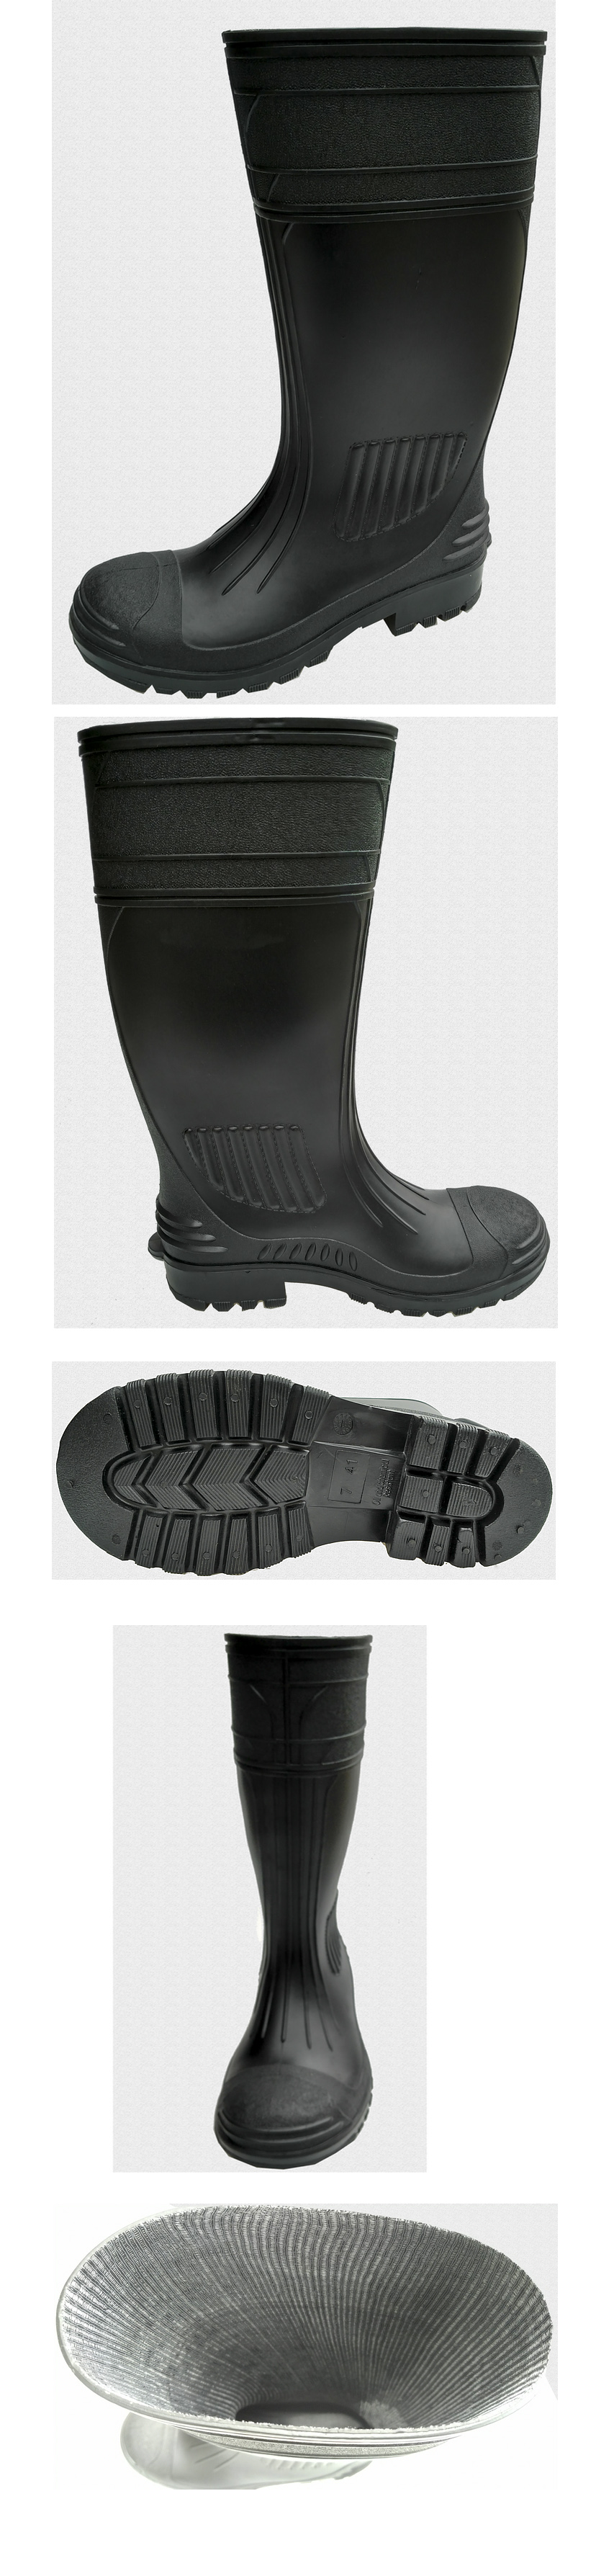 High quality Steel PVC Safety Rain Boots Wholesale